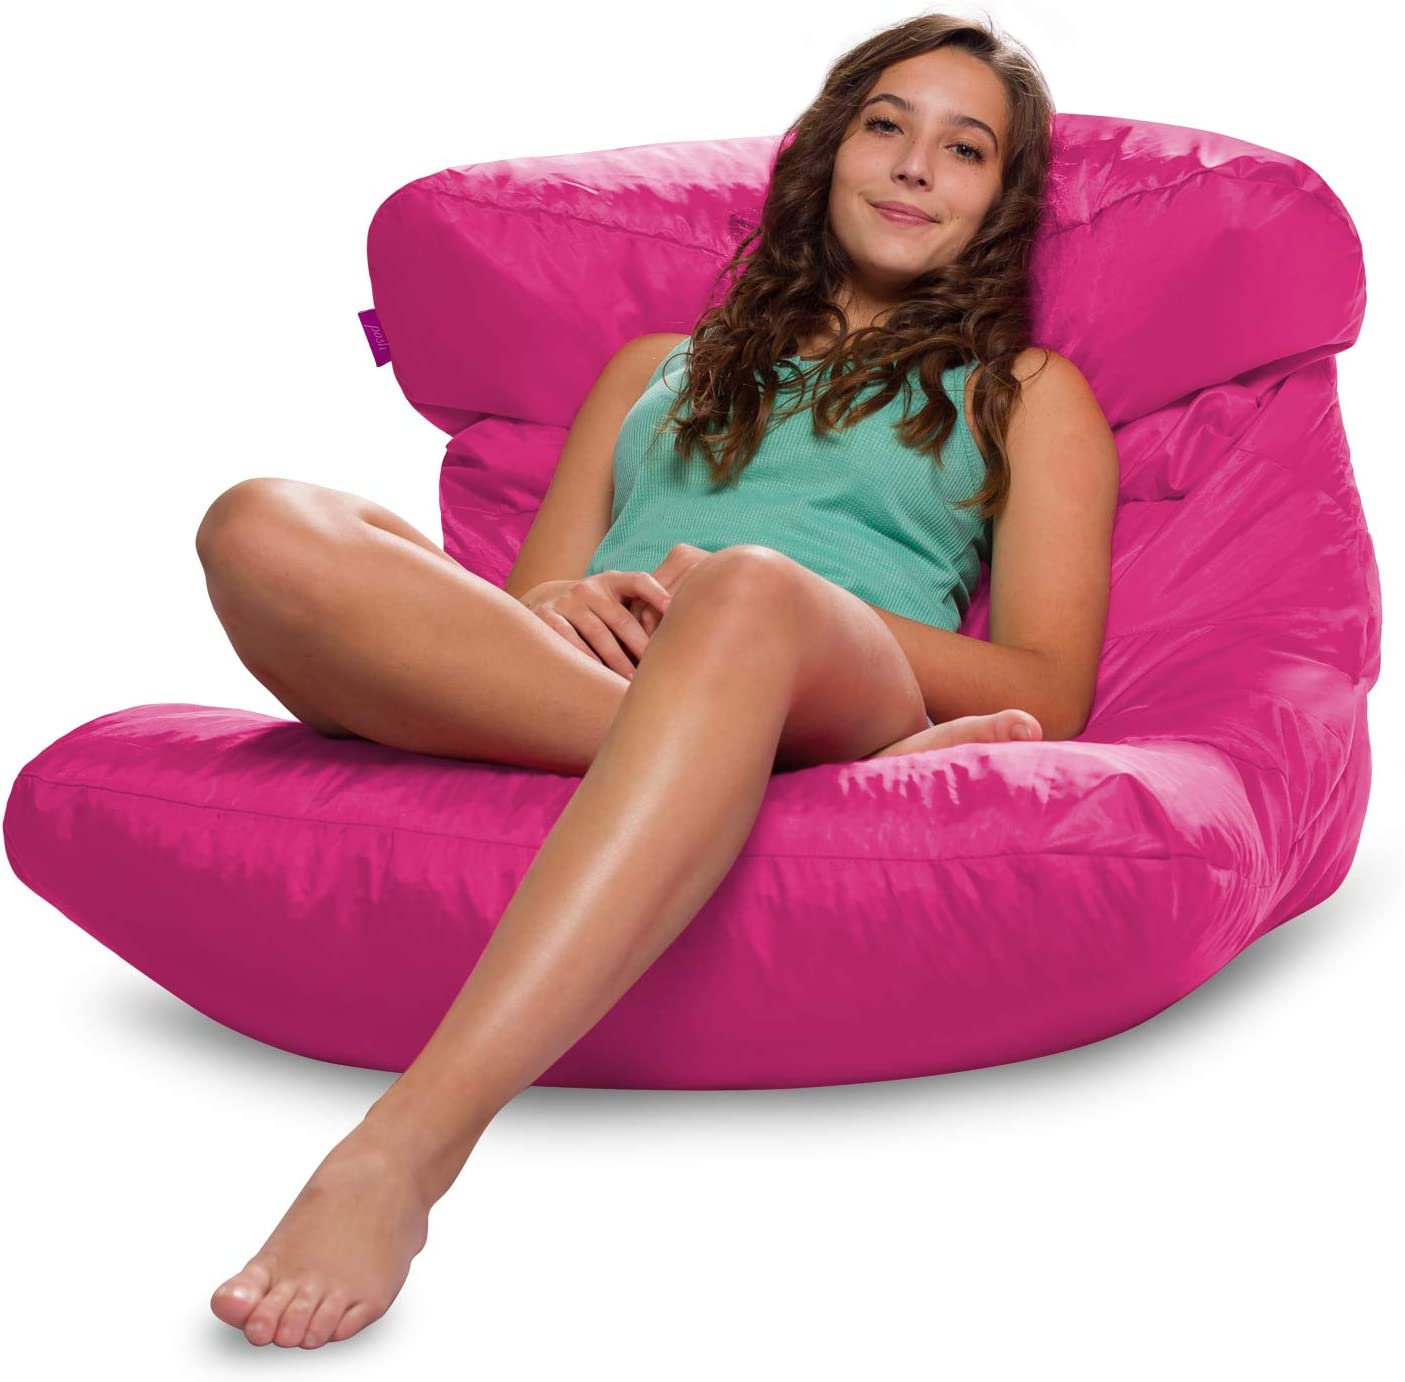 Posh Creations Laguna Lounger Teens, Kids and Adults for Bedrooms and Dorm Rooms, Large Bean Bag Chair, Soft Nylon-Pink